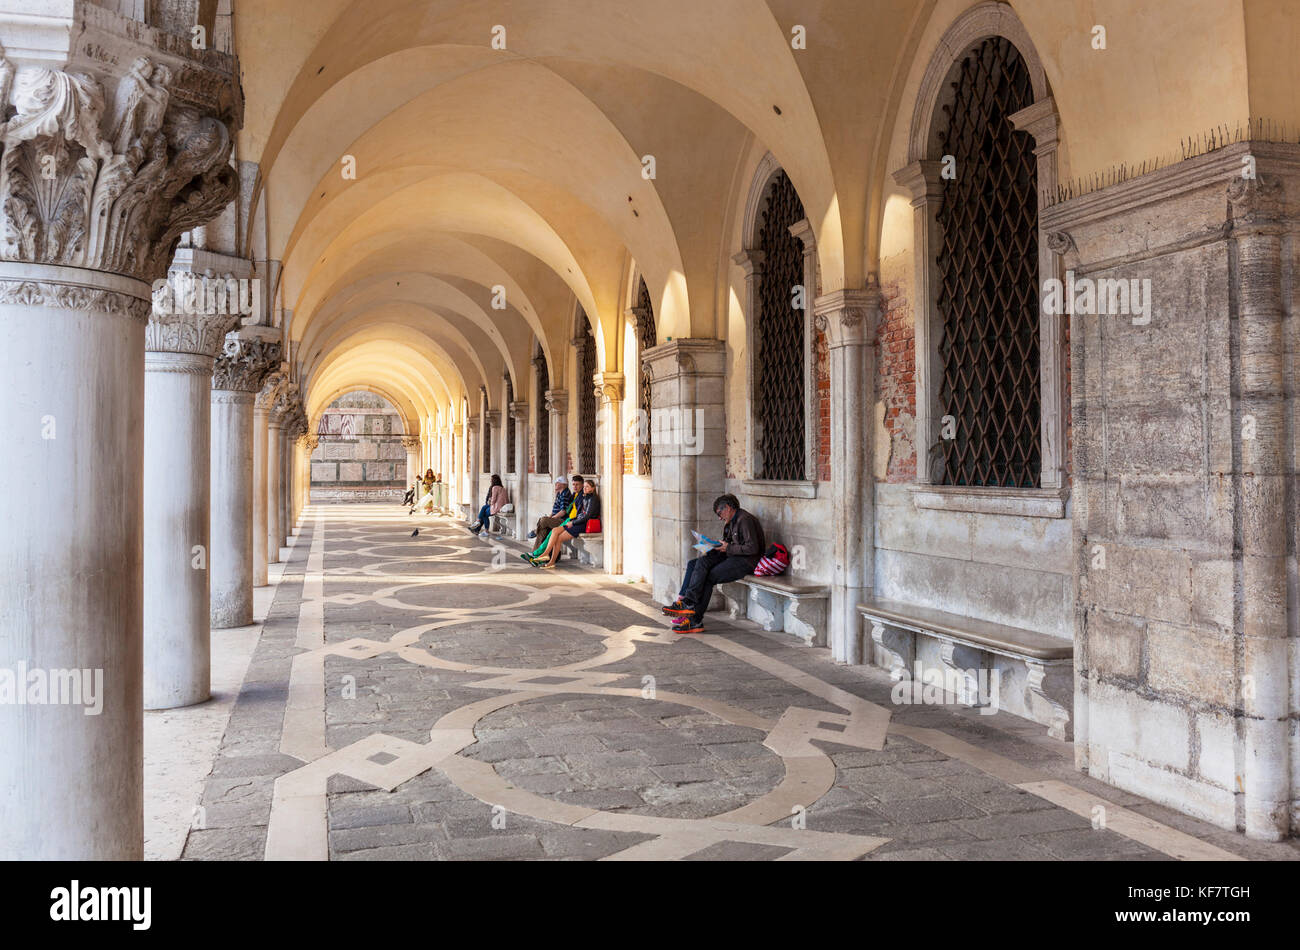 VENICE ITALY VENICE People sat under the arches in the Archway Portico of the Doges Palace Palazzo Ducale St marks - Stock Image